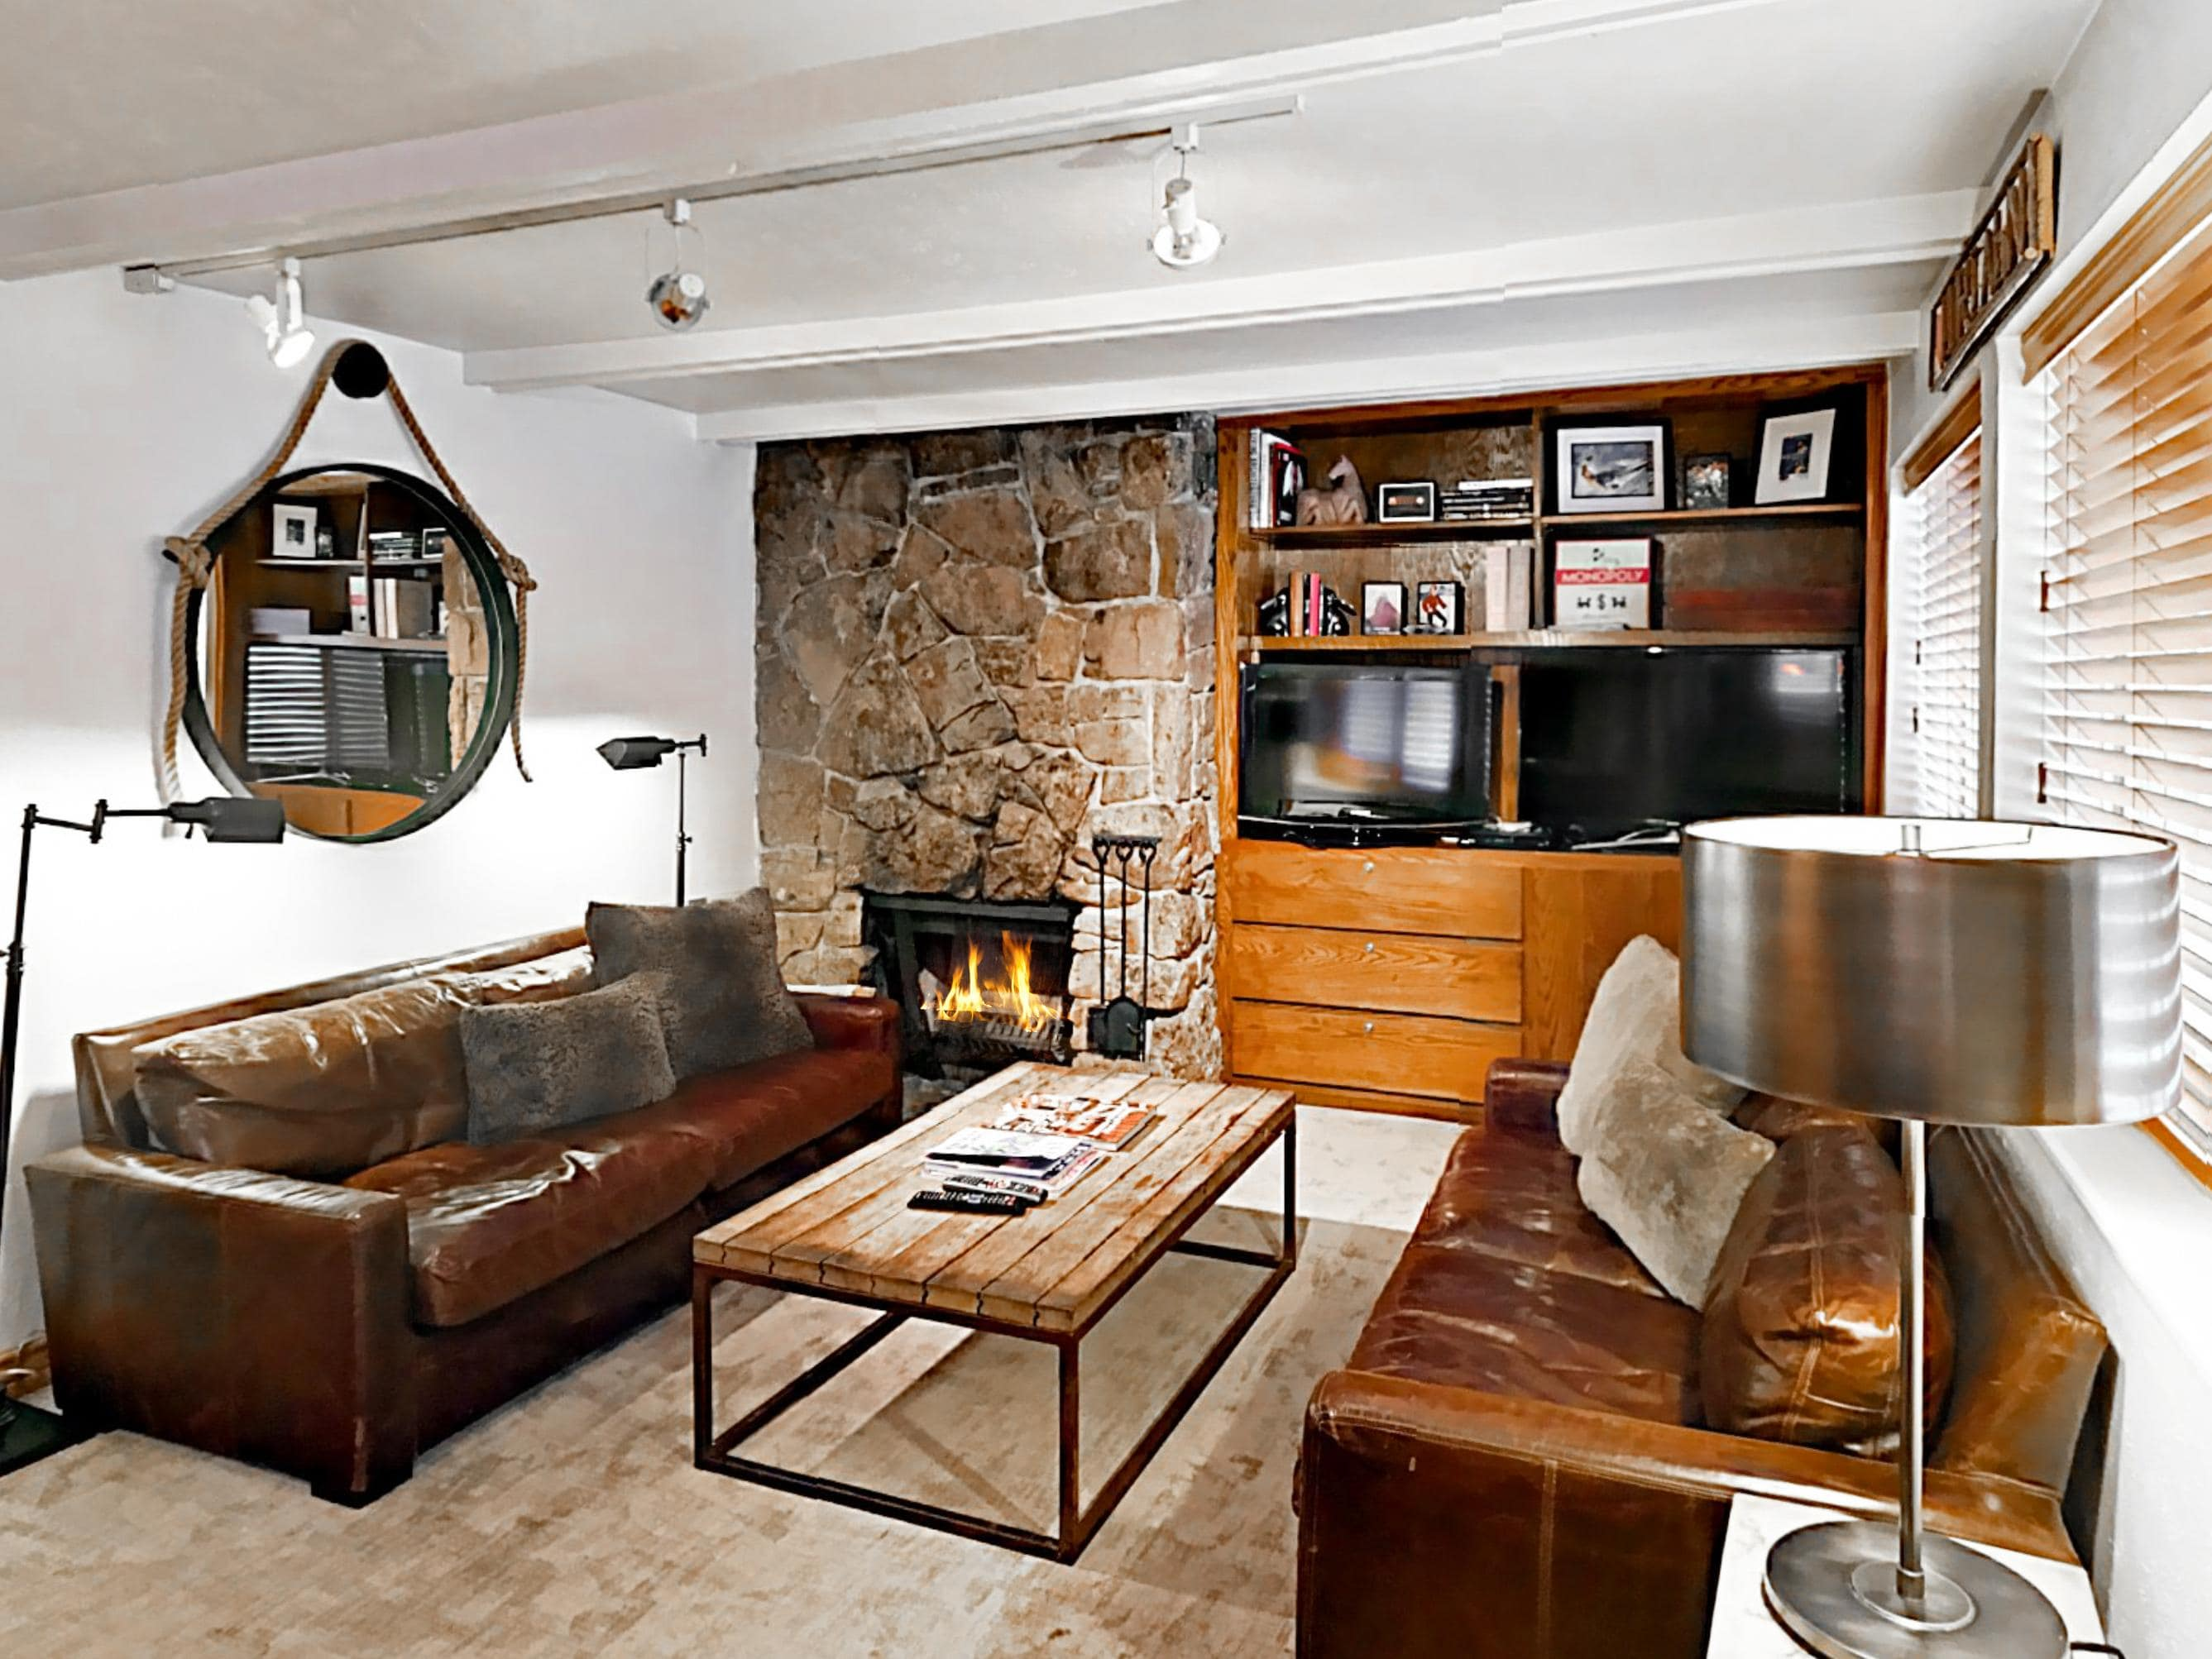 Welcome to Aspen! This condo is professionally managed by TurnKey Vacation Rentals.